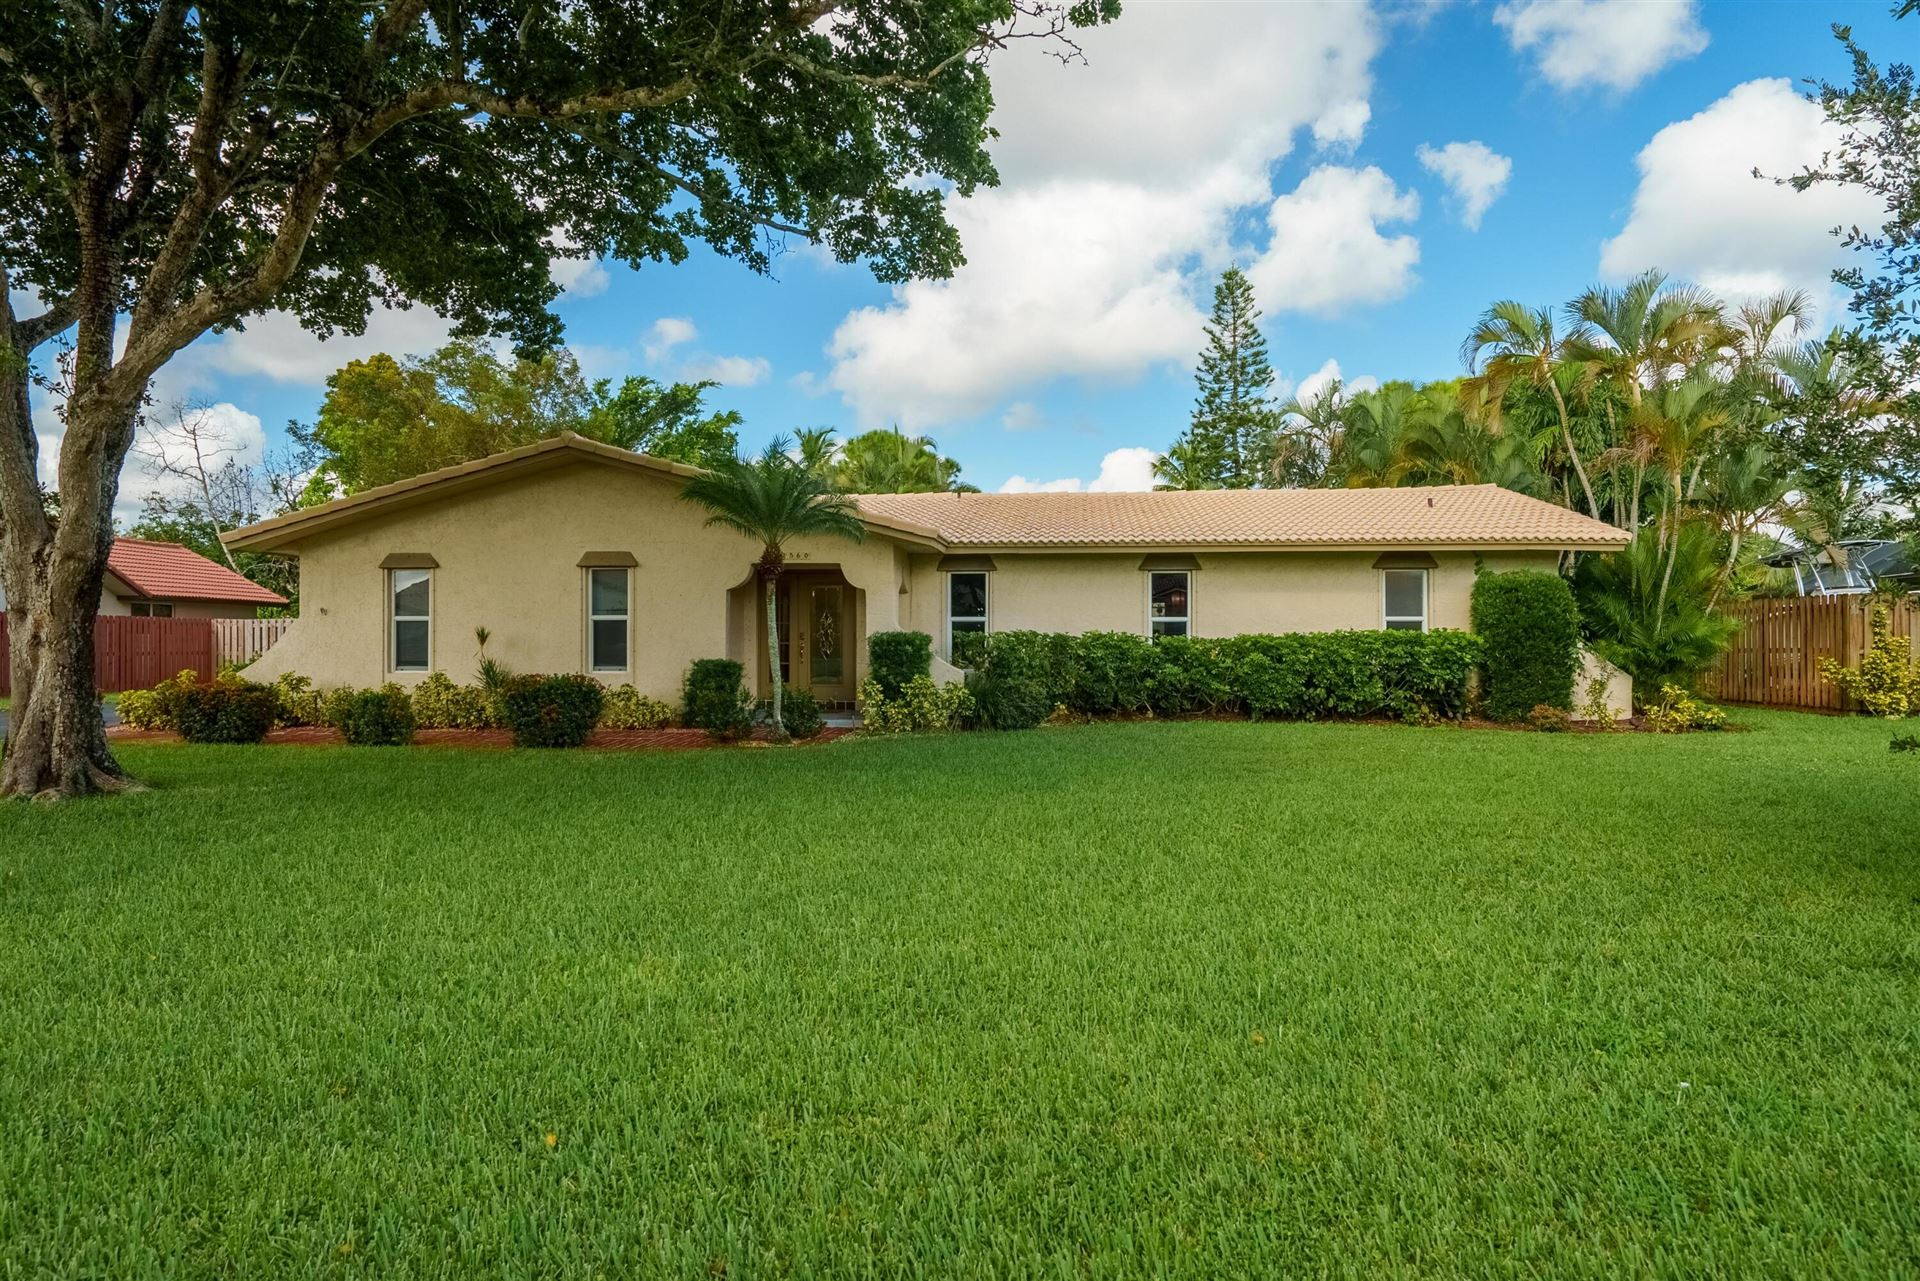 2560 NW 115th Drive, Coral Springs, FL 33065 - MLS#: RX-10750739